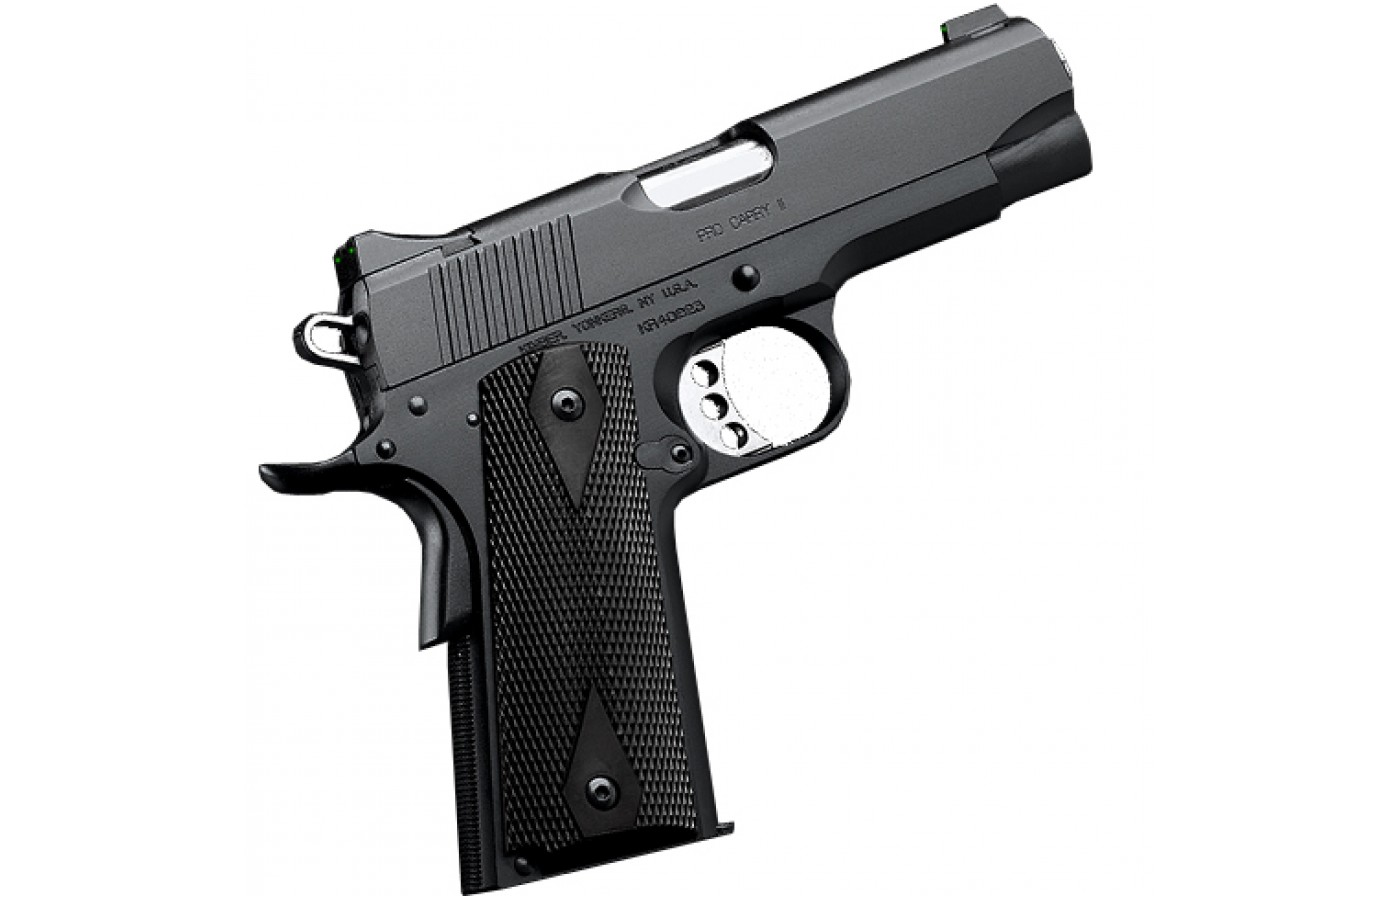 Kimber offers several design variants of the Pro Carry II that include a black on black version.